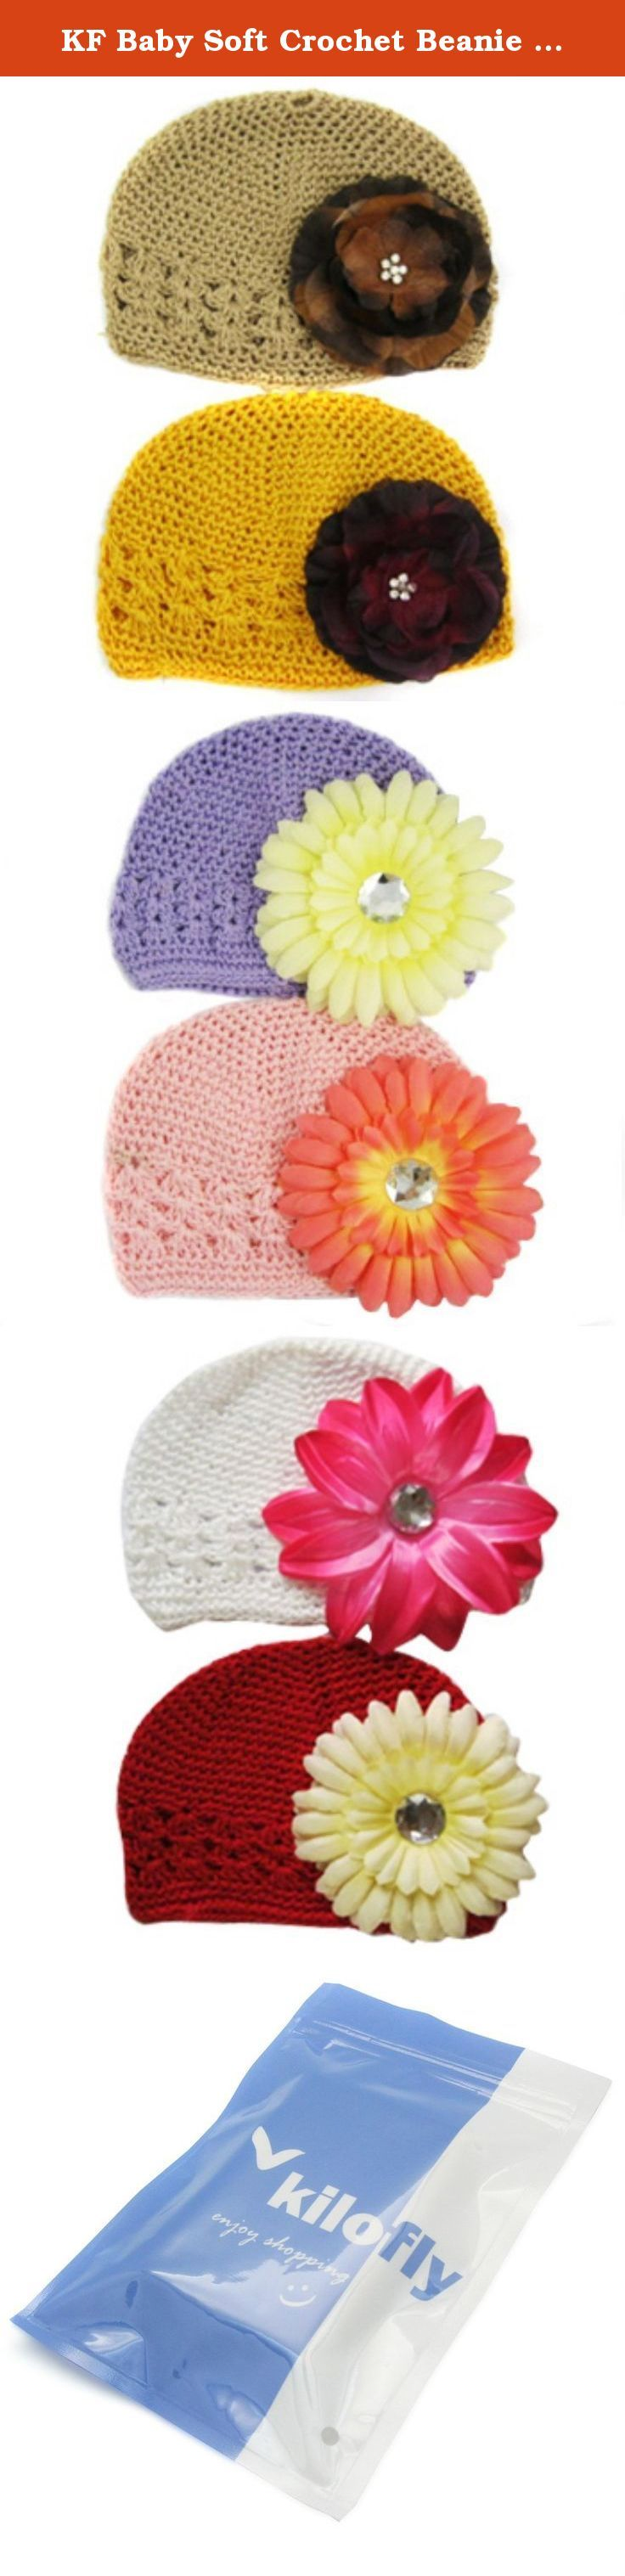 KF Baby Soft Crochet Beanie Hat with Flower Clip, Set of 8 (8 Hats + 8 Clips). KF Baby Super Soft Crochet Beanie Hats with colorful flower clips are absolutely adorable on your darling little one! Just one of those finishing touch products that only a mother knows is sometimes necessary. A special event must have with an easy price. Definitely a great gift item when you do not have a clue what to get. Colors of hats and flower clips are as shown in photos. KF Baby is a trademark…